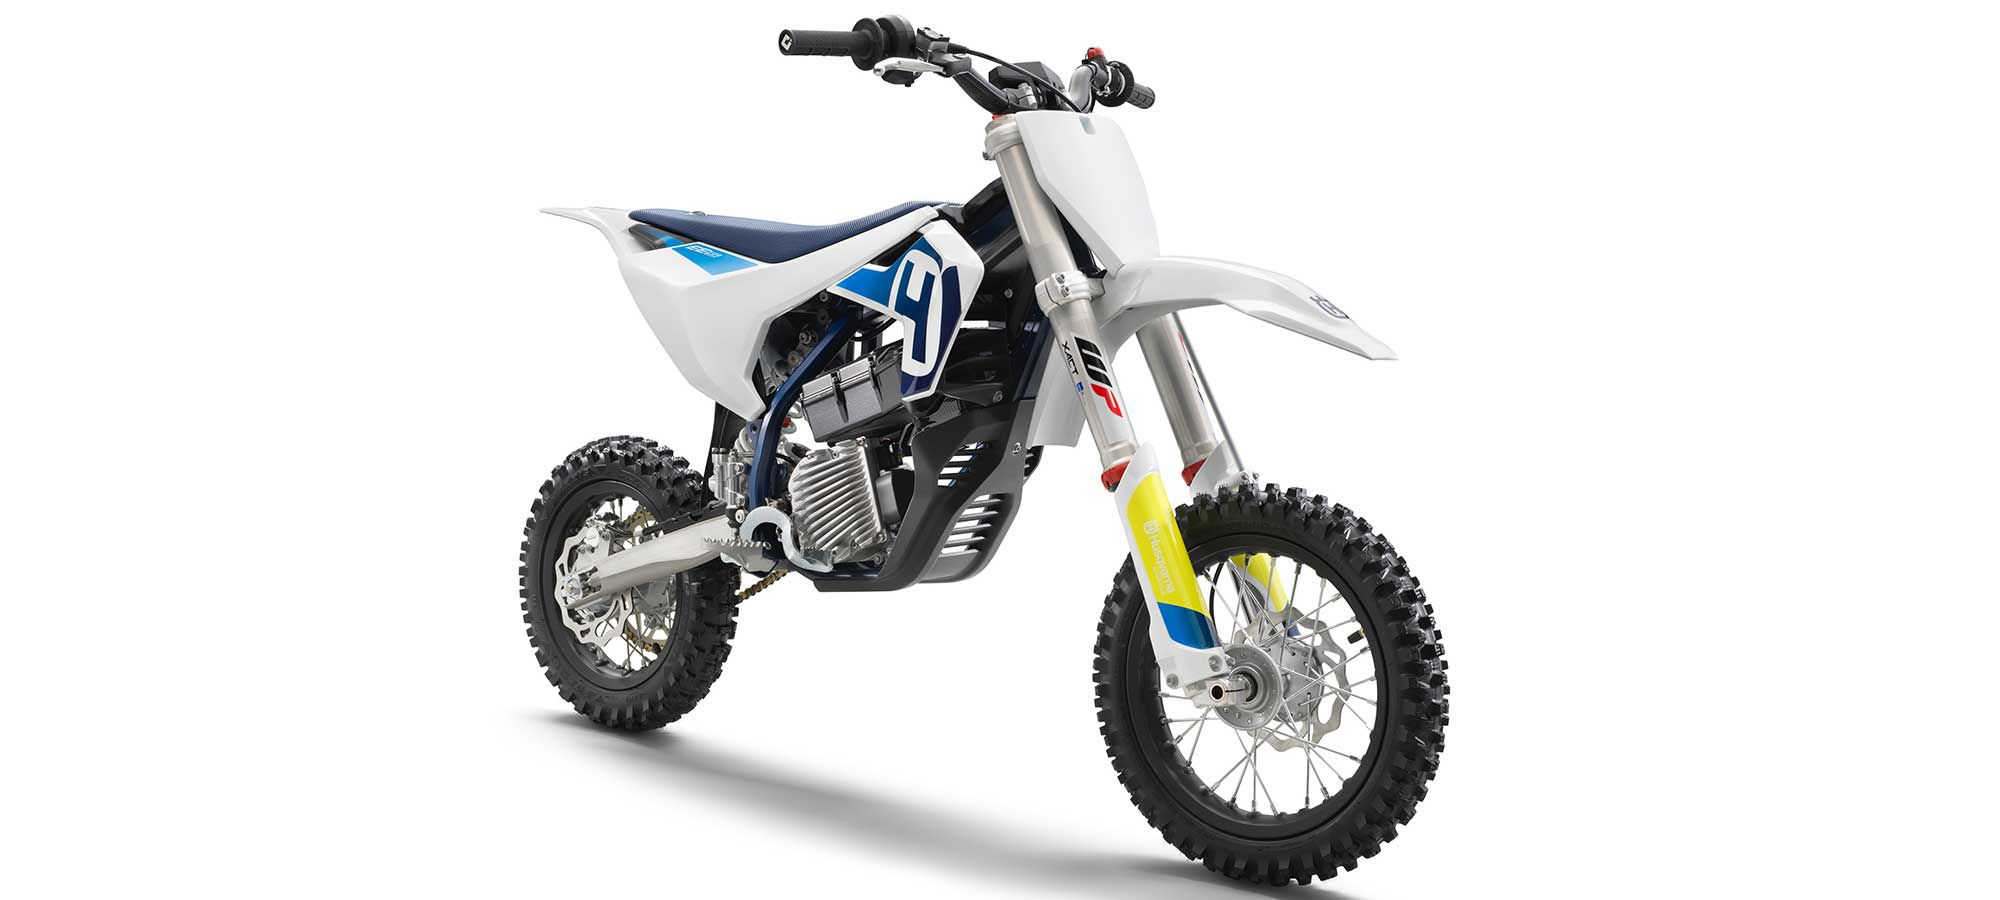 Dirt Bike, Off-Road, Motocross Motorcycles   Cycle World